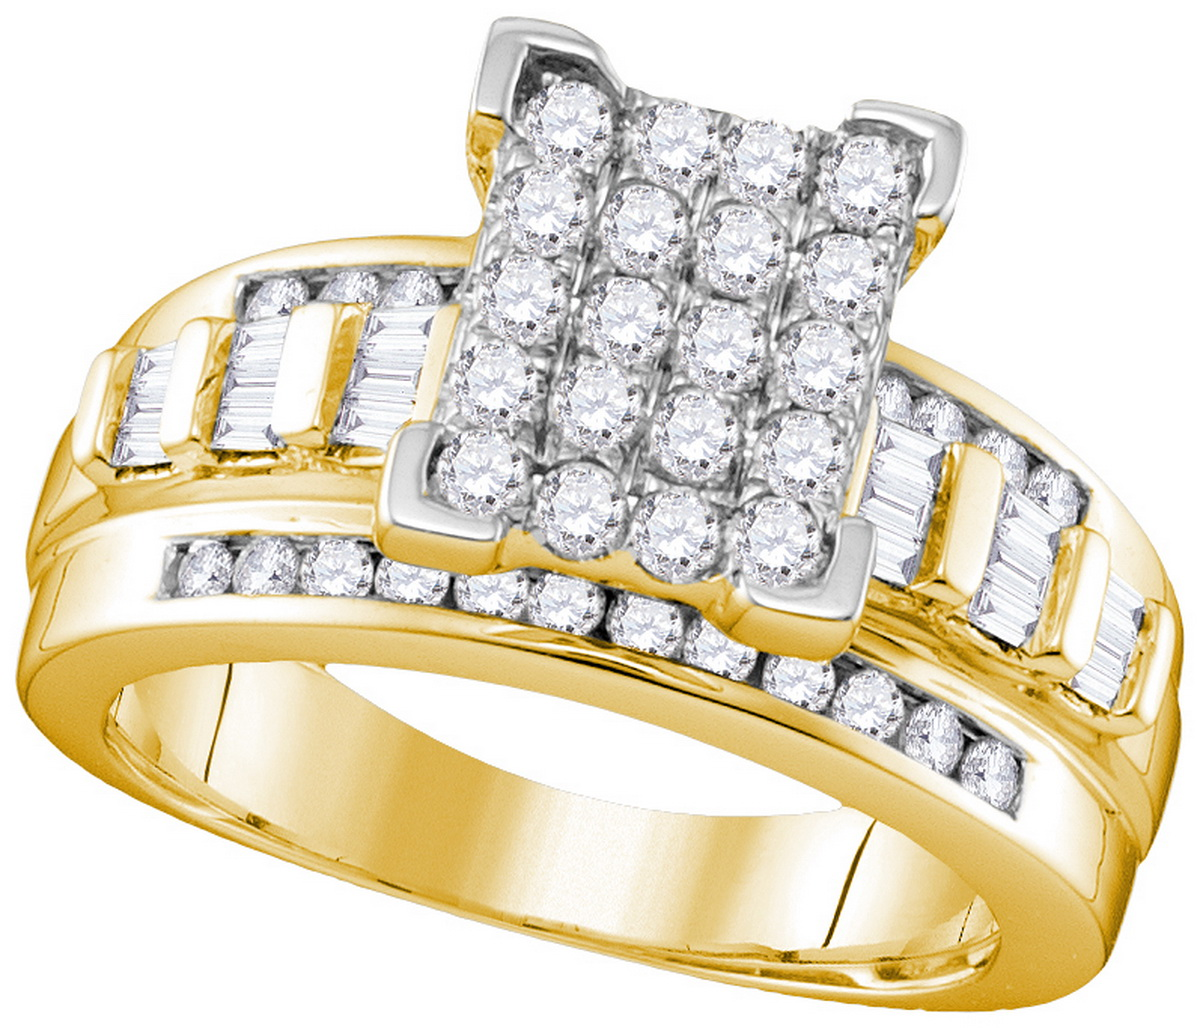 10kt Yellow Gold Womens Round Diamond Rectangle Cluster Bridal Wedding Engagement Ring 7 8 Cttw Size 9.5 by Jewels By Lux